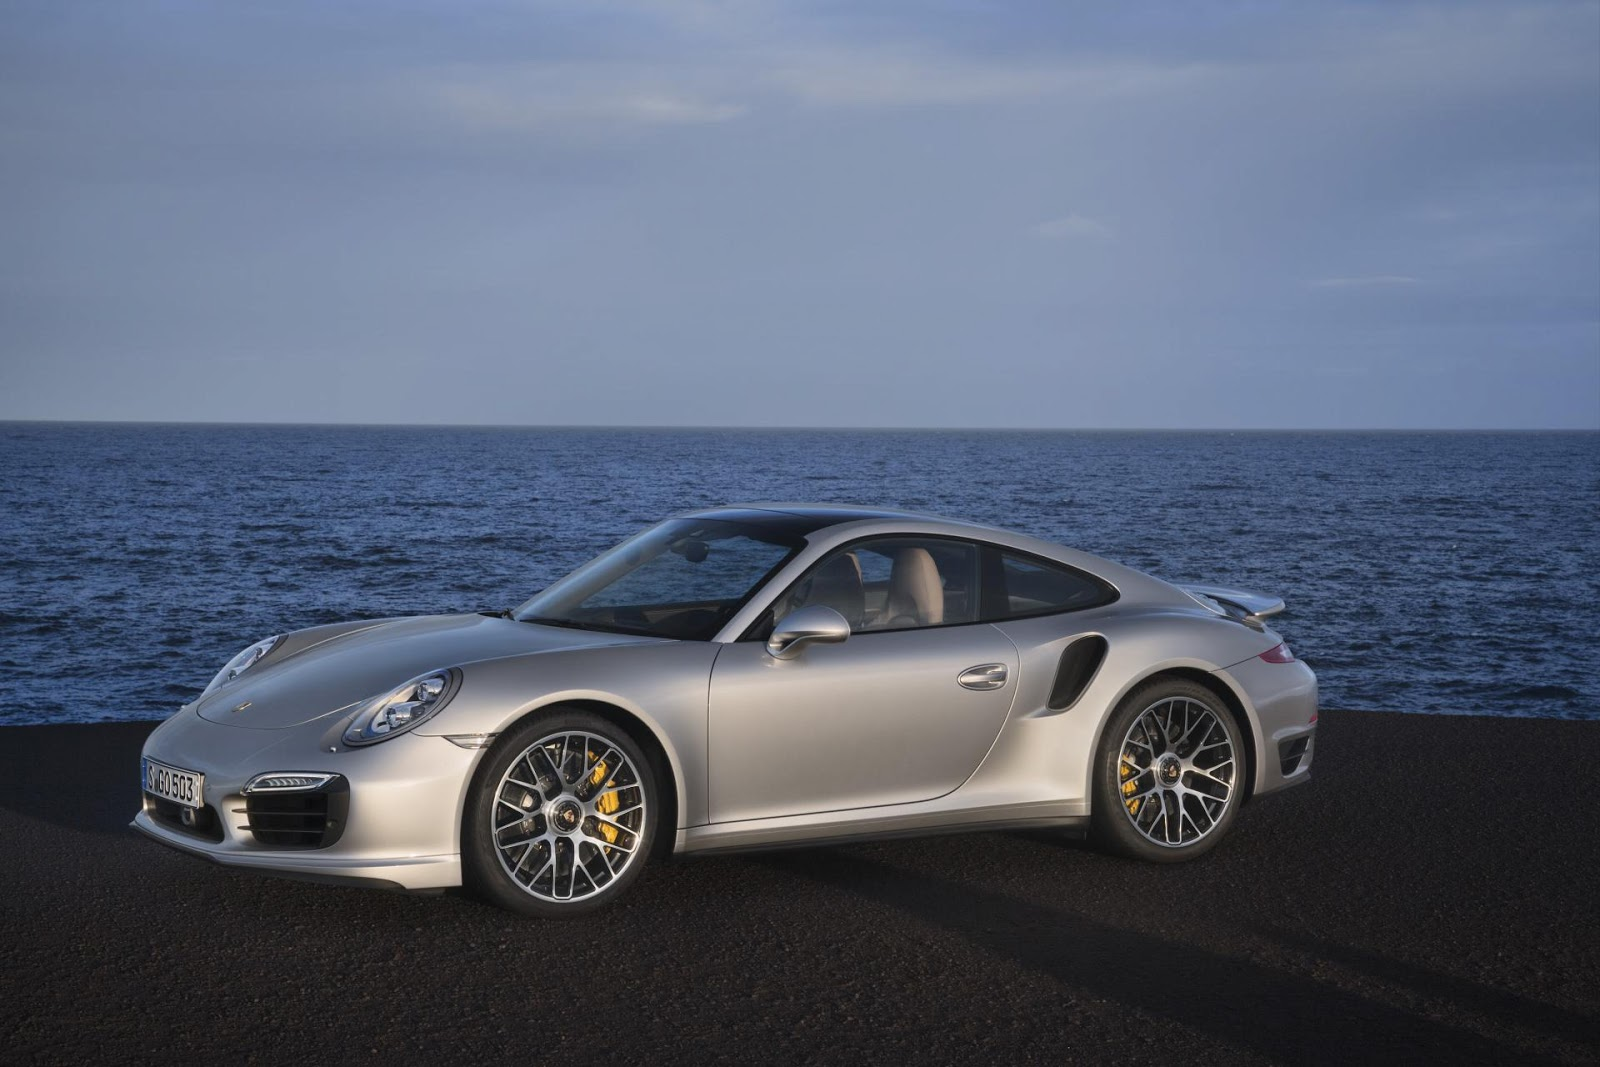 porsche 911 turbo s coupe 2014 hottest car wallpapers bestgarage. Black Bedroom Furniture Sets. Home Design Ideas